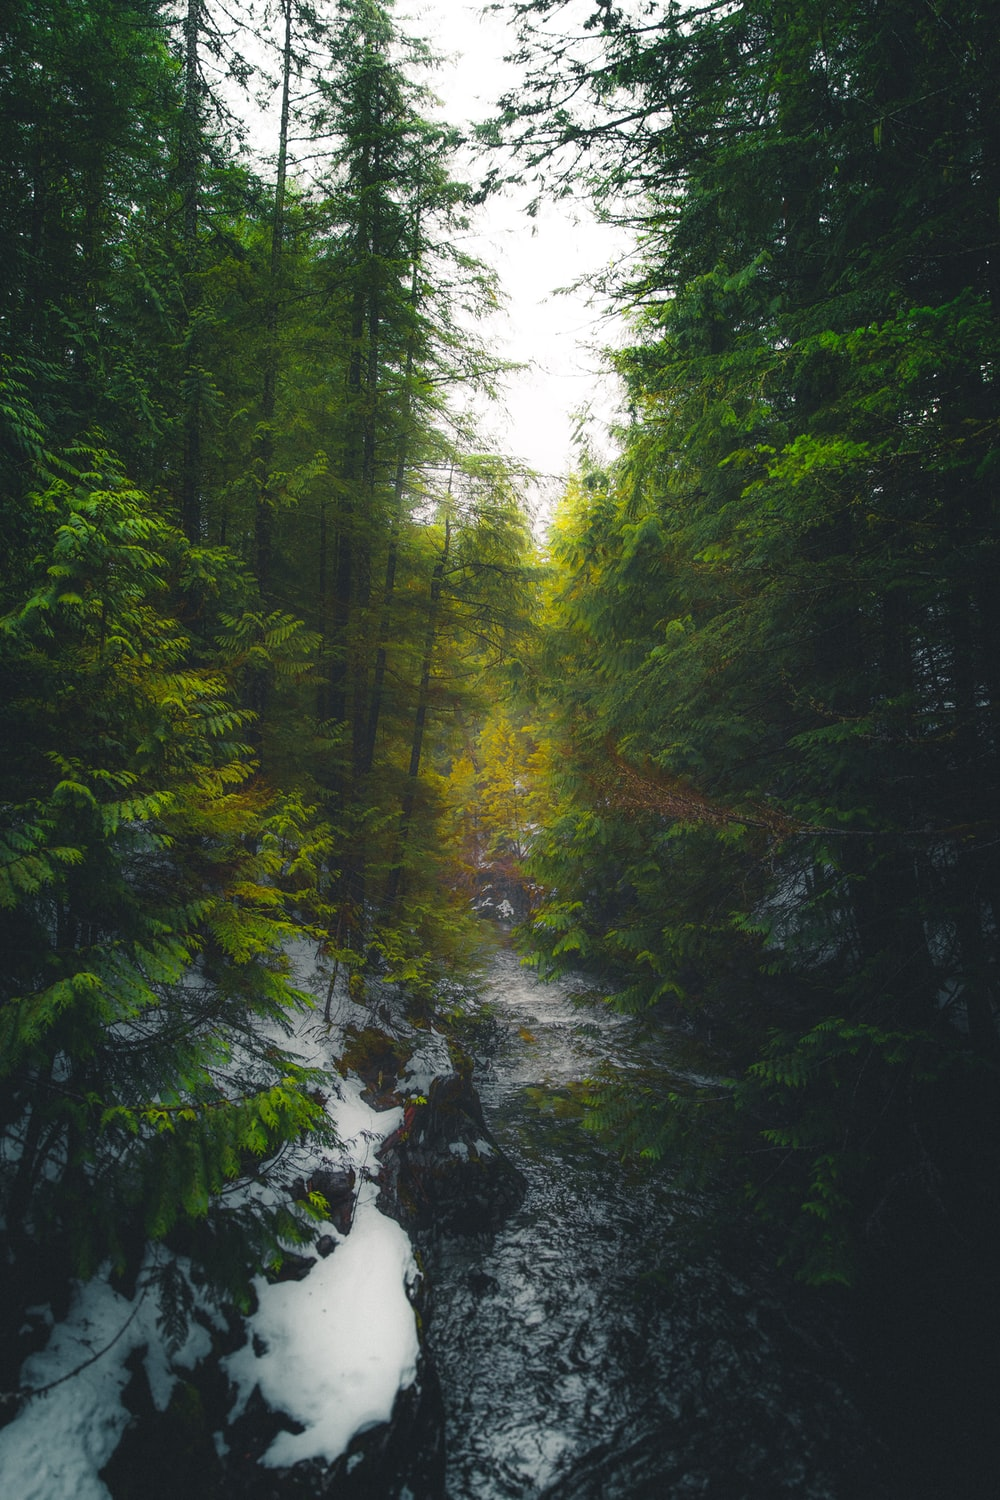 time-lapse photo of water flowing between tall trees